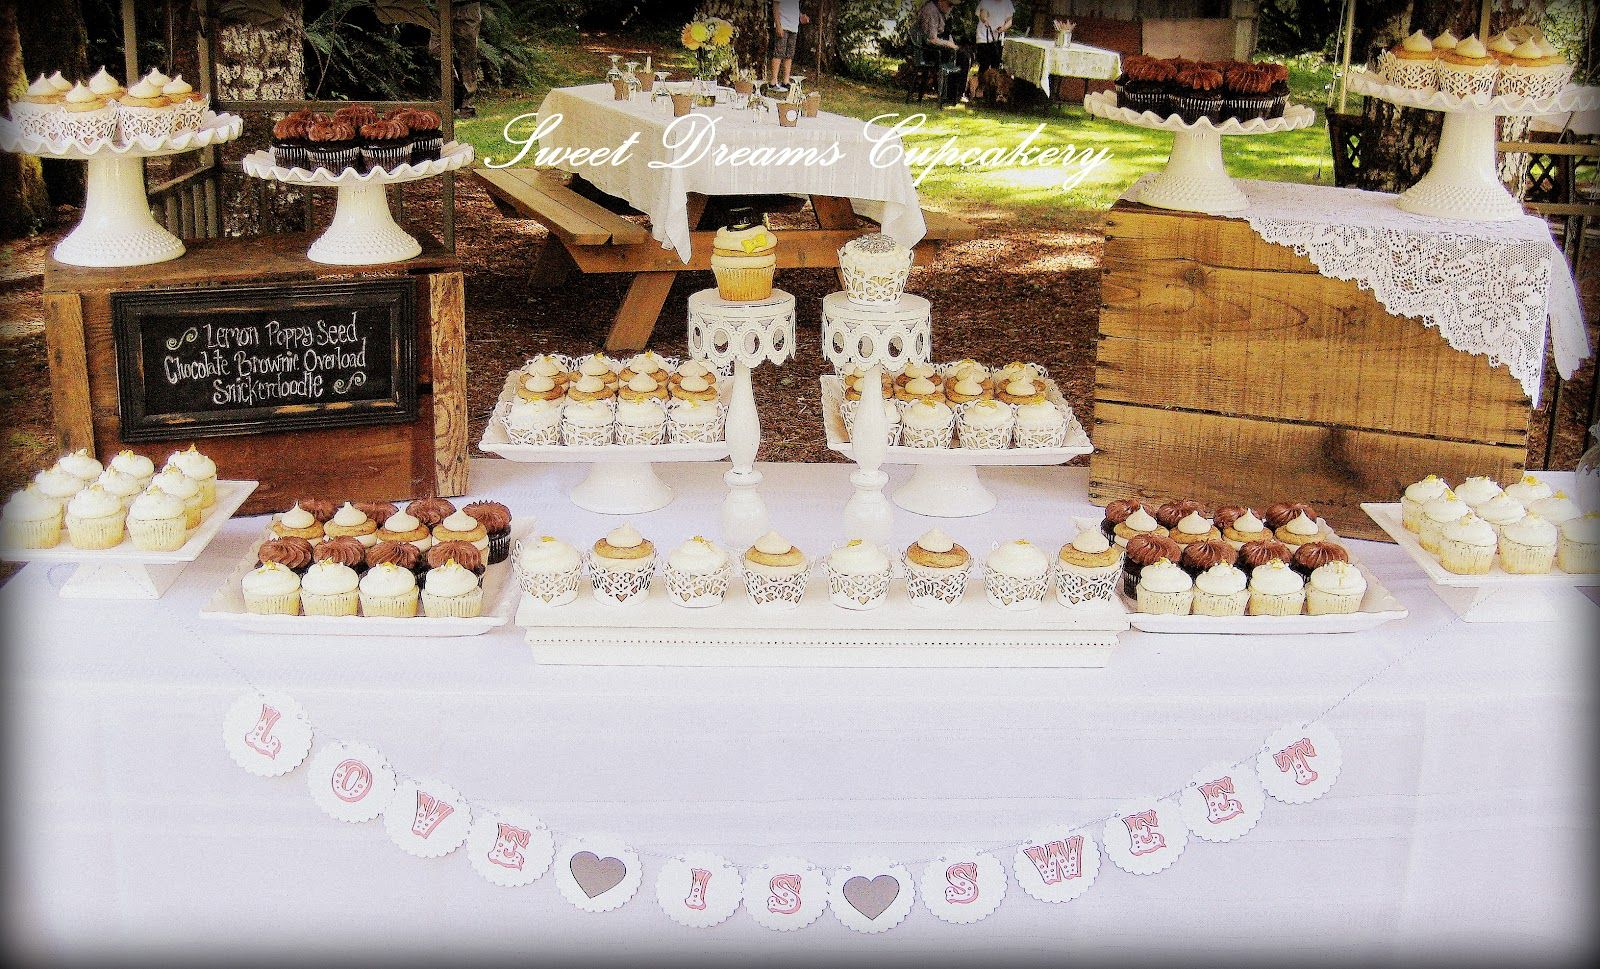 rustic wedding cupcake display | Sweet Dreams Cupcakery*: Rustic ...